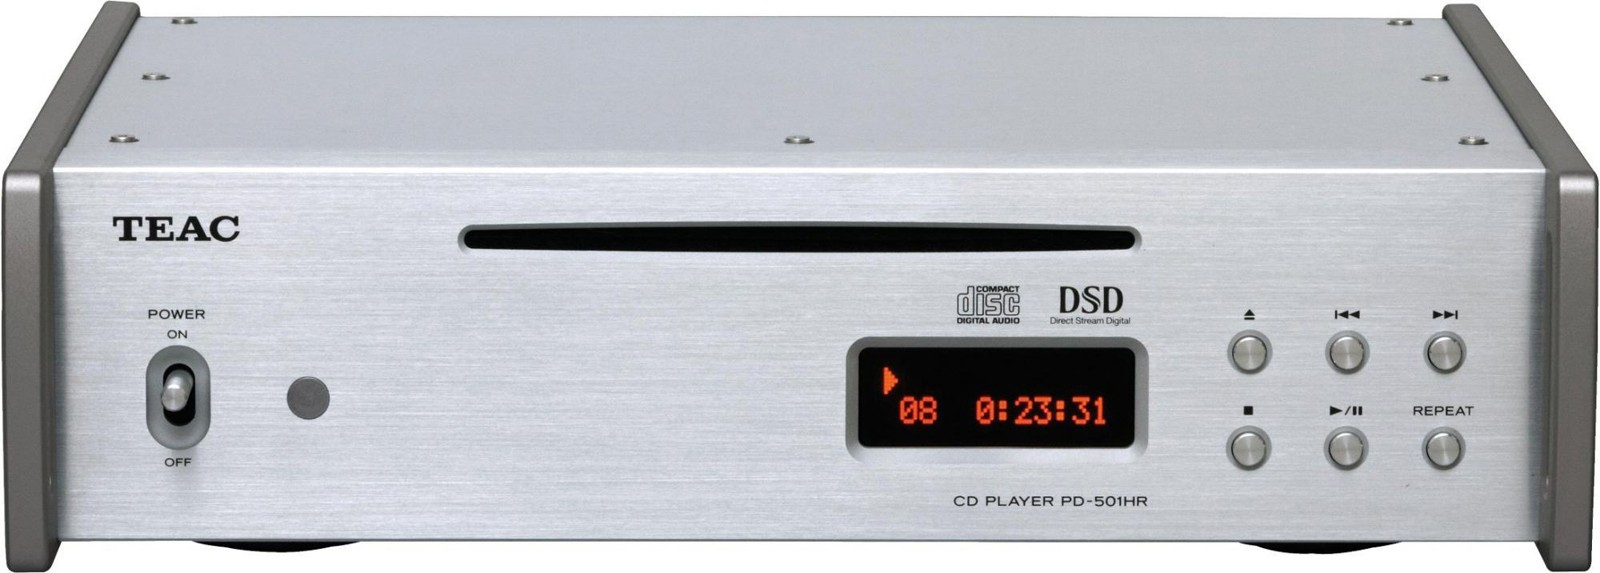 TEAC PD-501HR CD Player with DSD and PCM at Audio Affair